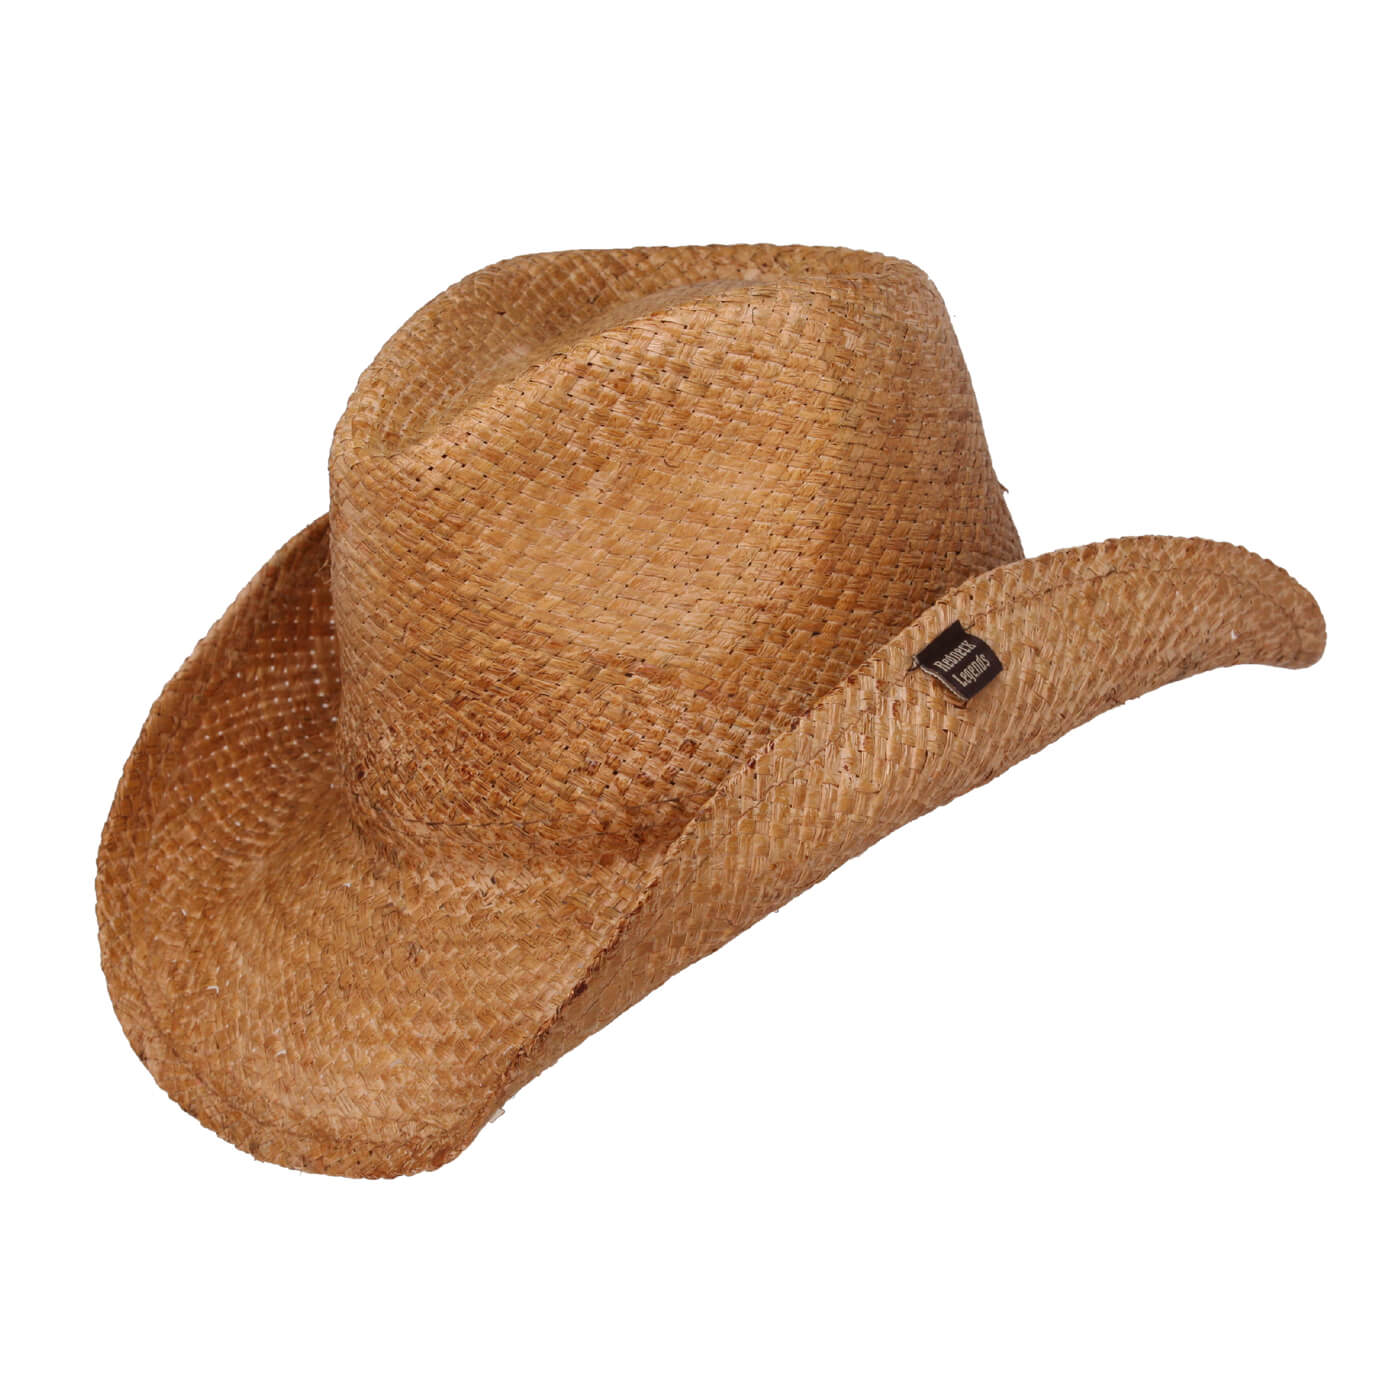 Billy Curlington Straw Cowboy Hat